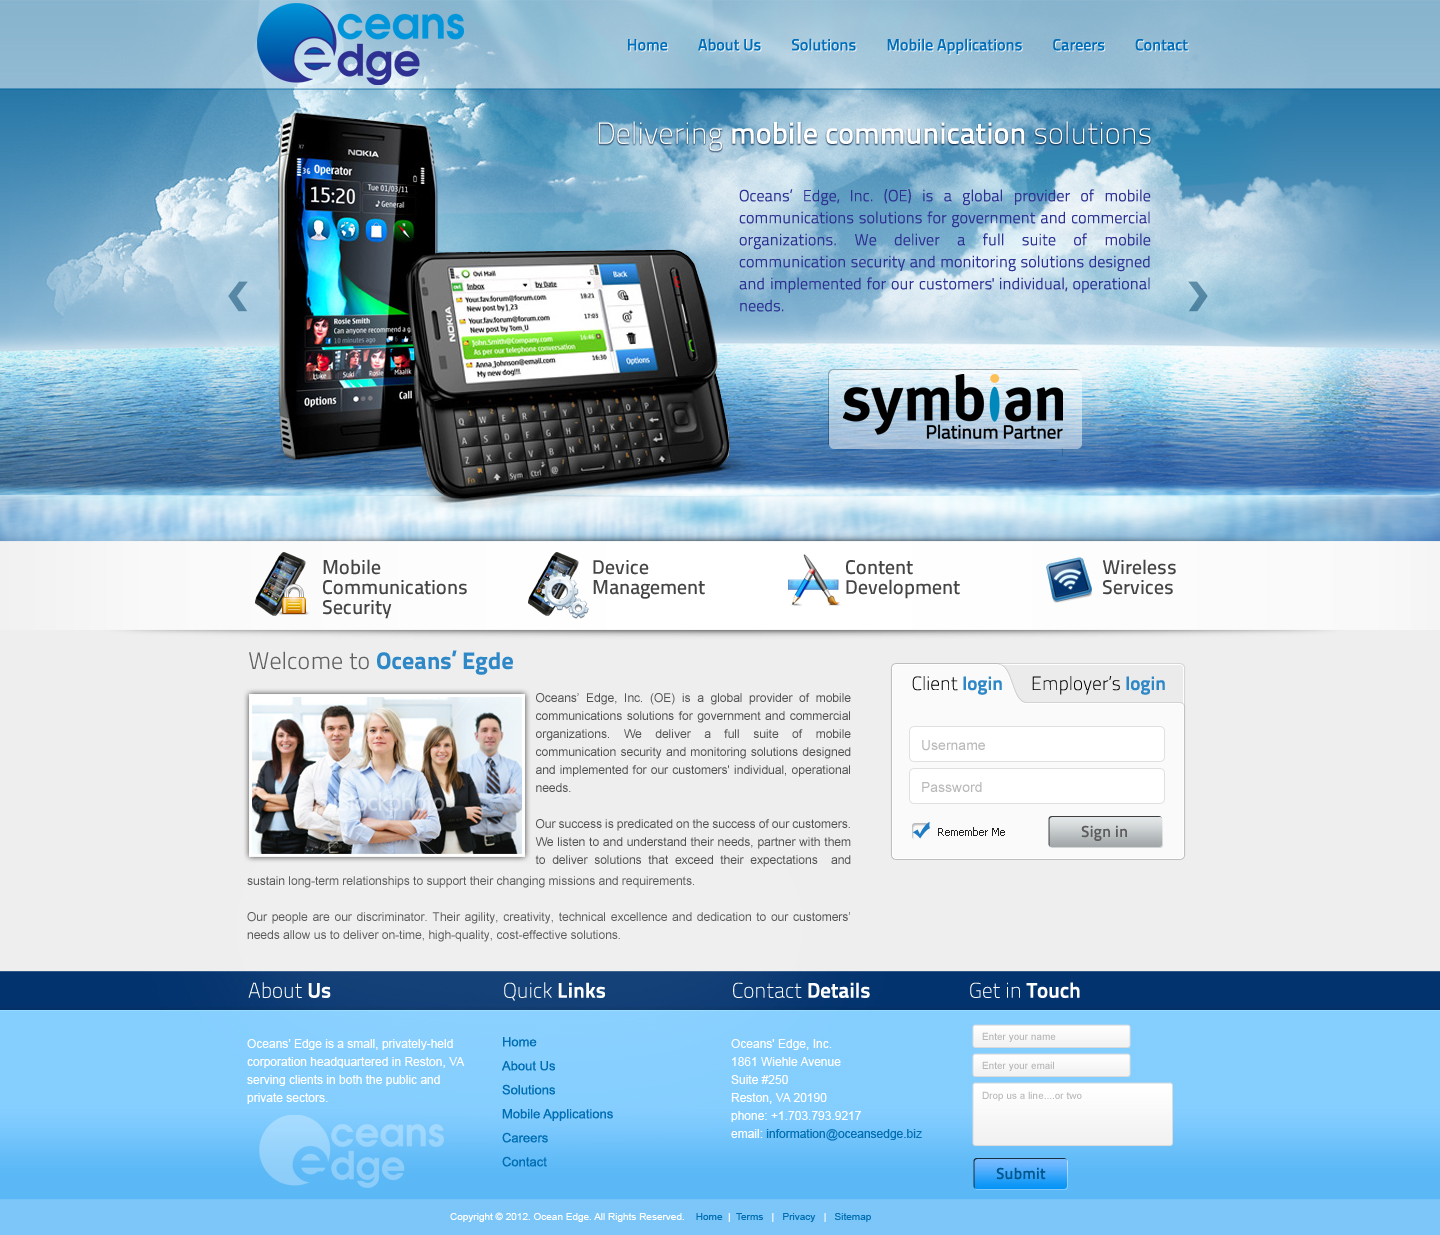 Web Page Design Contests » Web Page Design Needed for Company Oceans ...